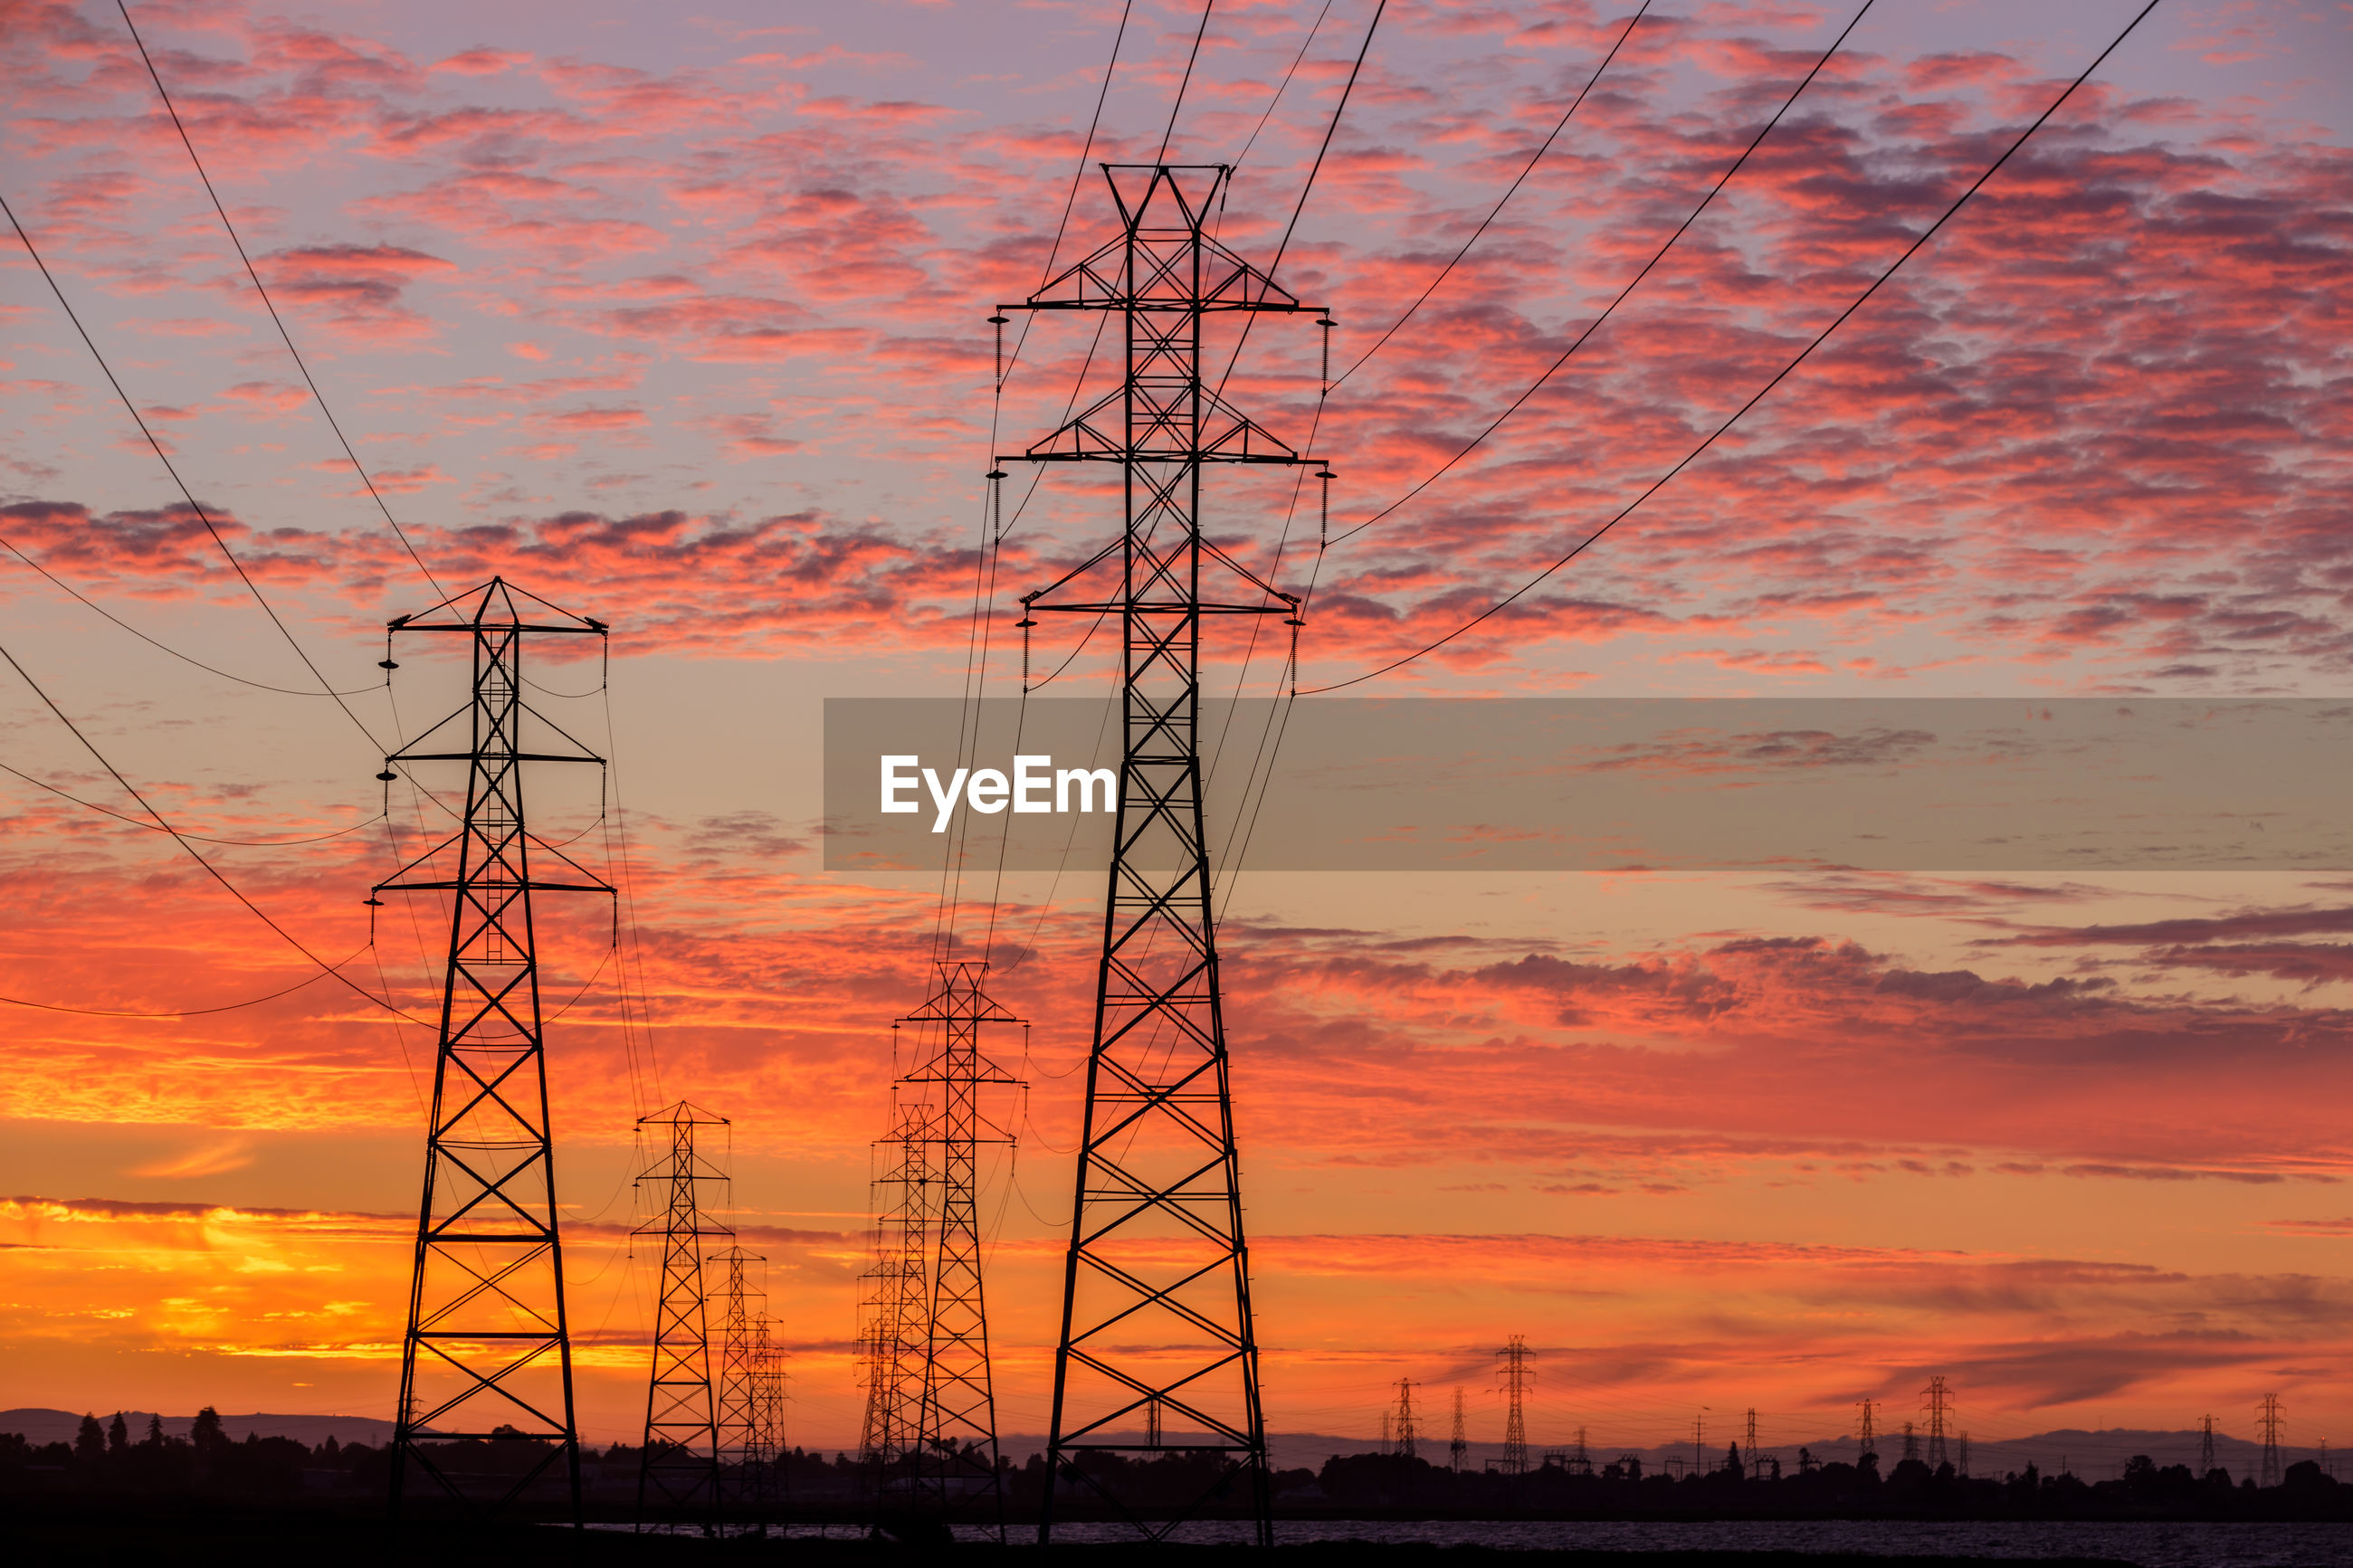 LOW ANGLE VIEW OF SILHOUETTE ELECTRICITY PYLONS AGAINST DRAMATIC SKY